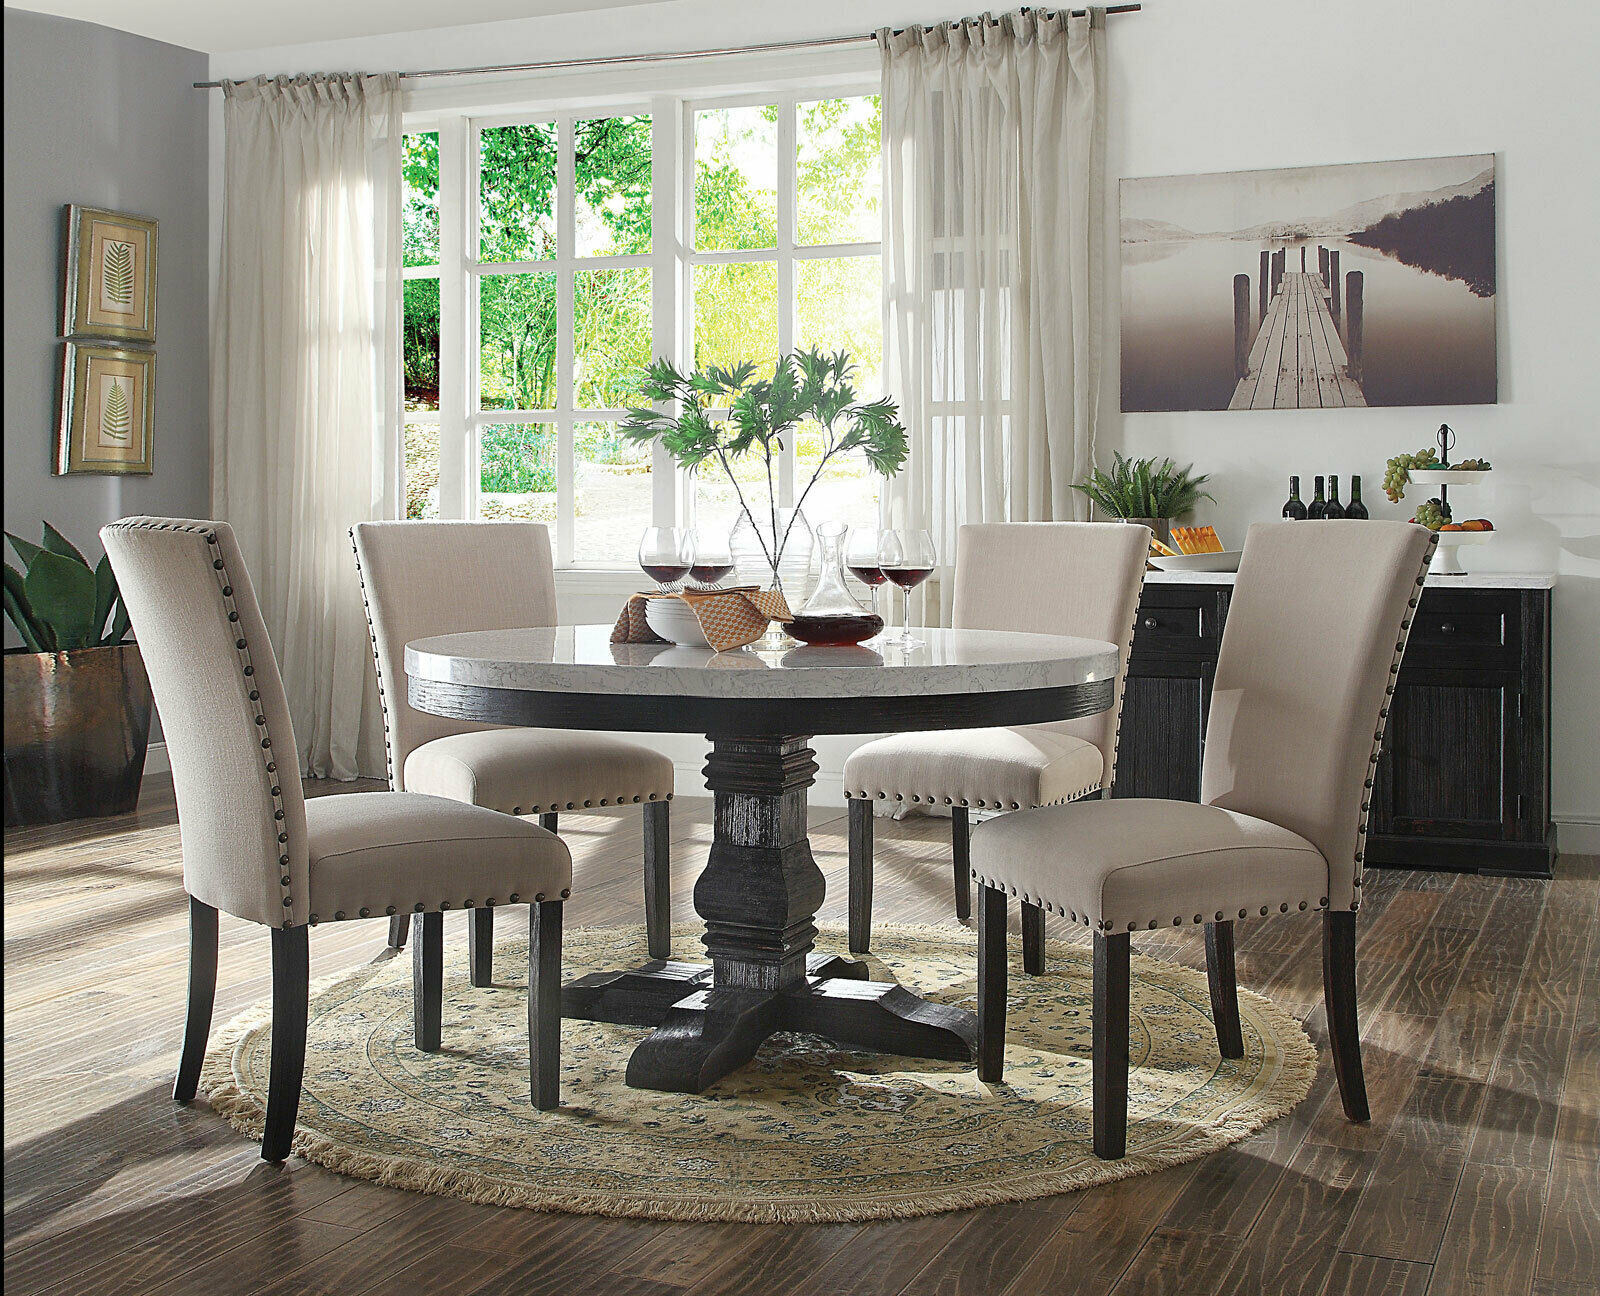 Gisela 5 Pieces Modern Dining Room Set Round White